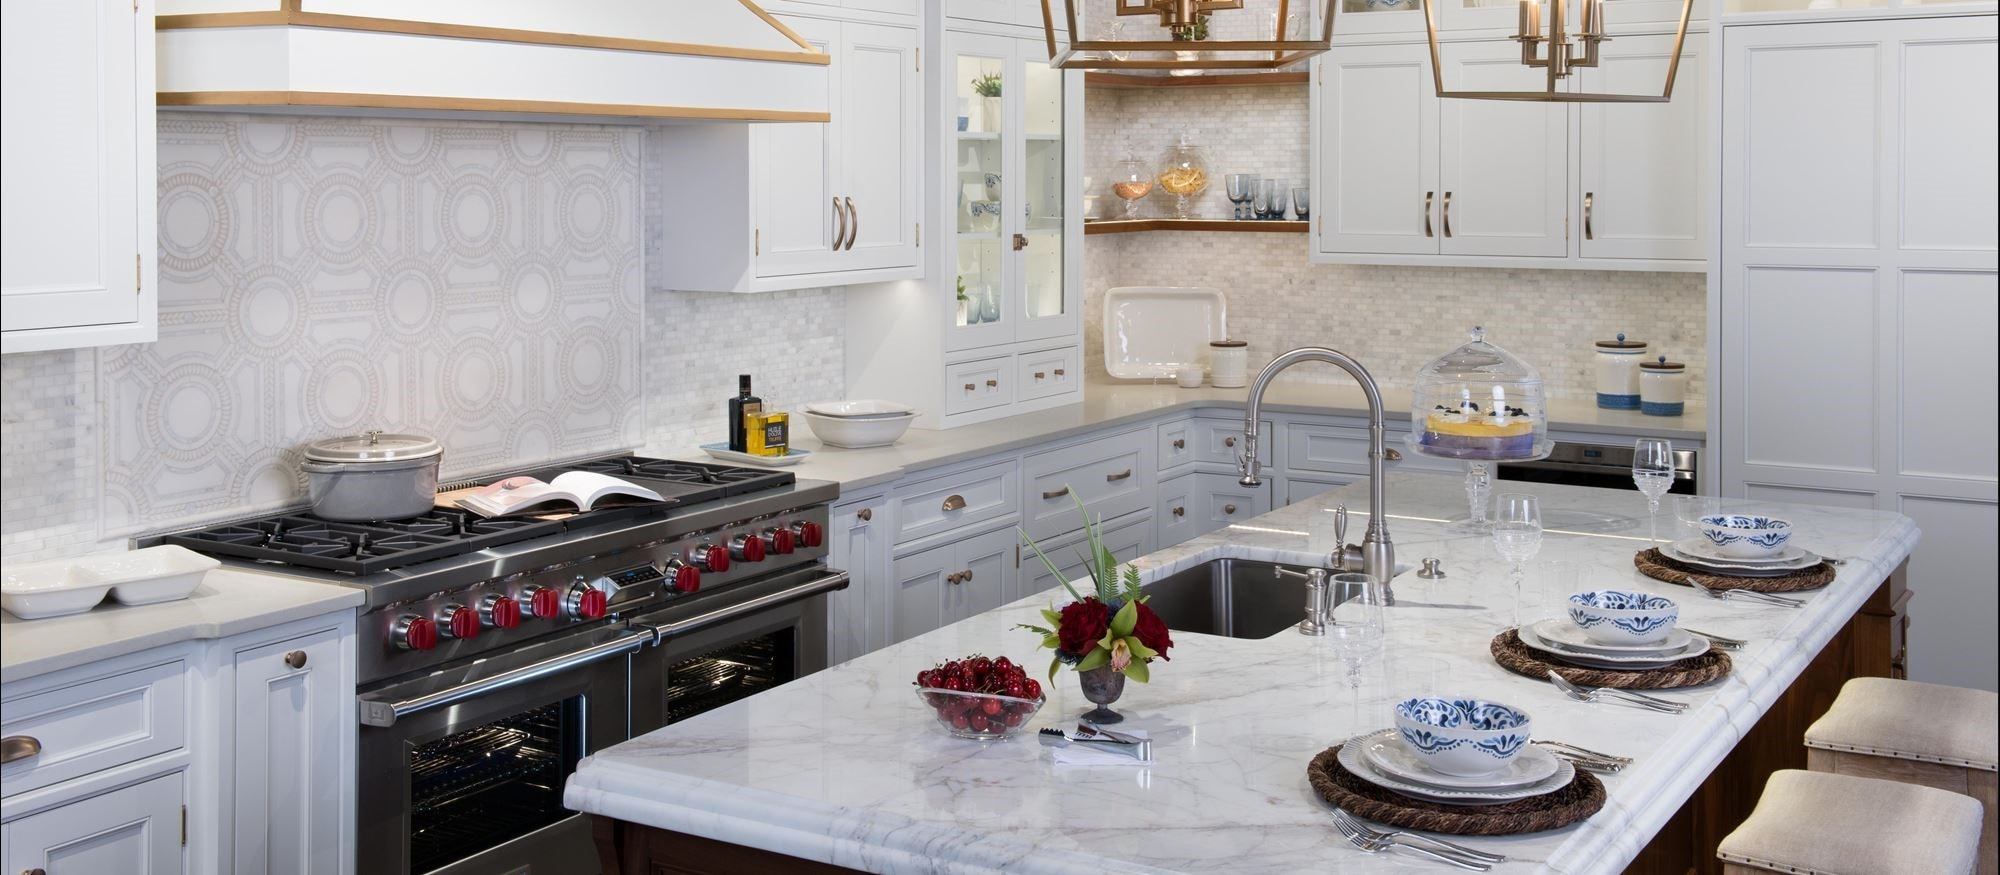 Get a complete, personalized kitchen appliance consultation at the Sub-Zero, Wolf and Cove Showroom in Milford, Massachusetts